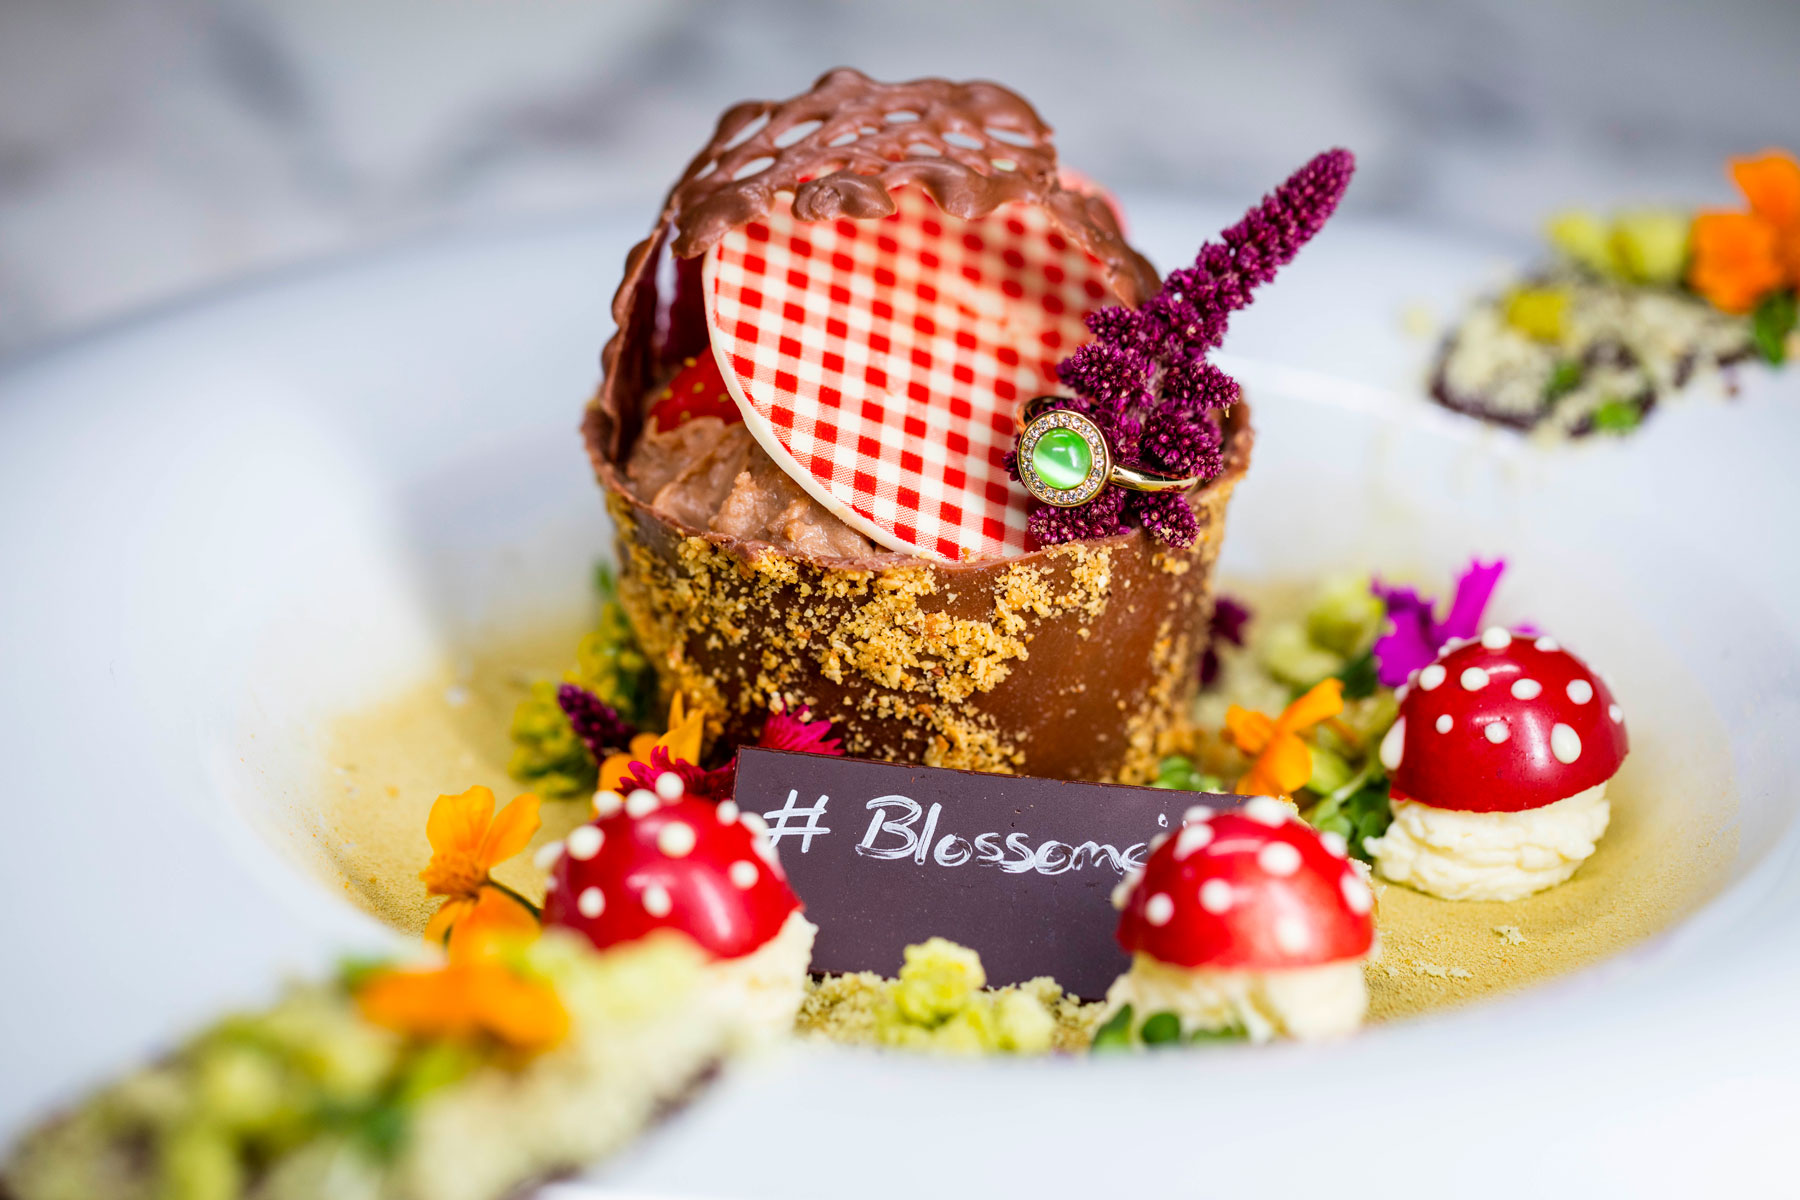 New Blossom City Tasting Menu At The Plateau In Canary Wharf